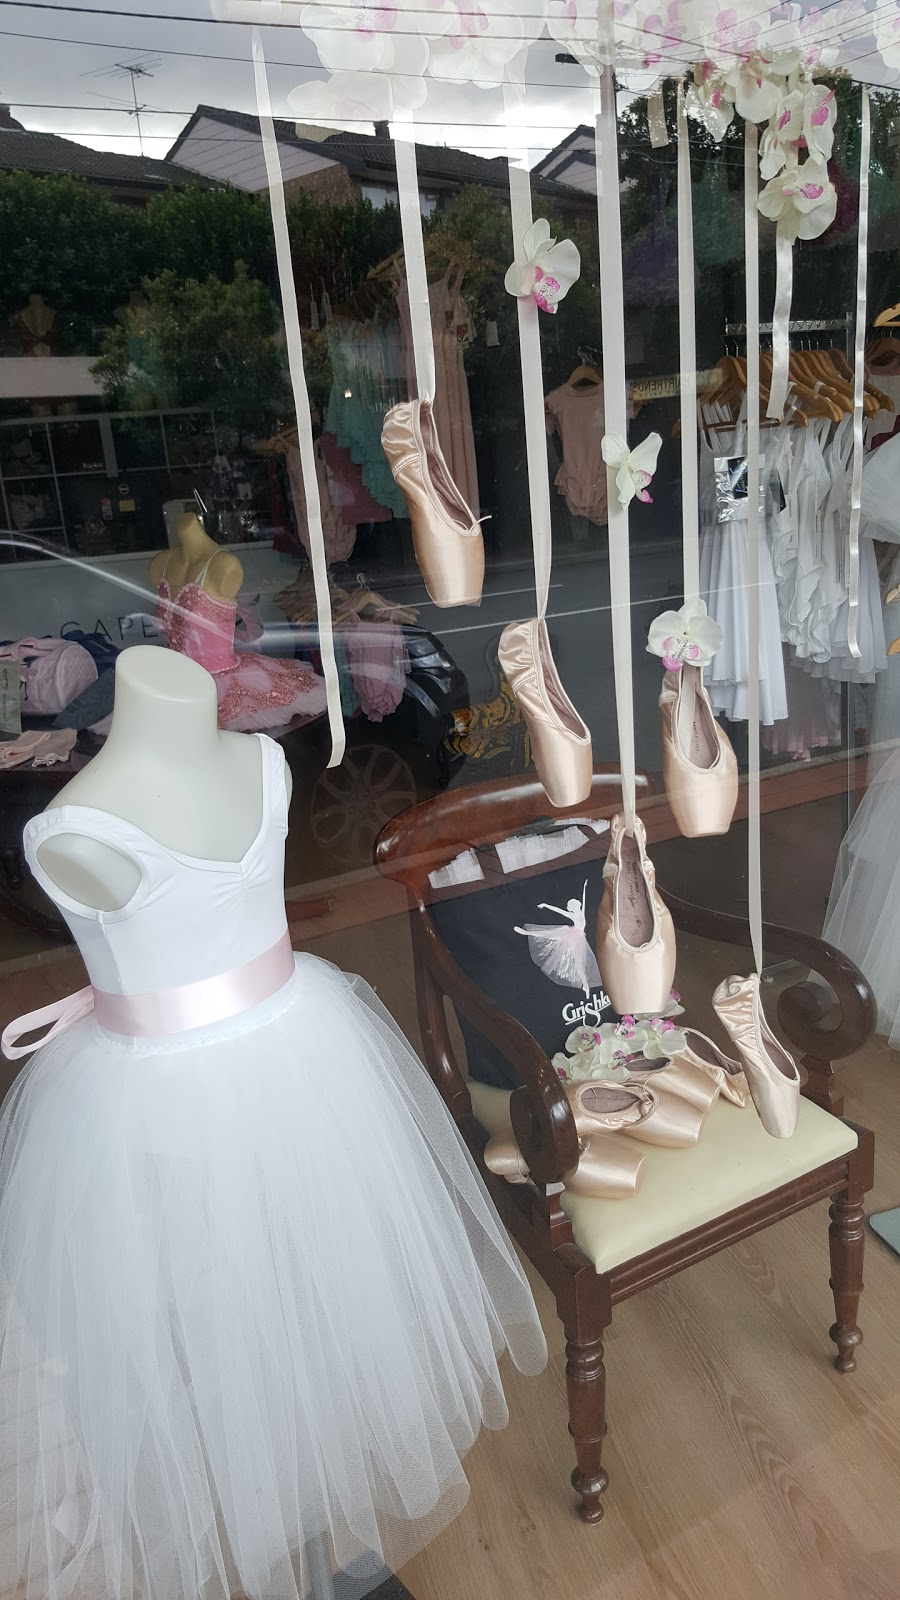 Capezio by Ballet Emporium | clothing store | 555 Willoughby Rd, Willoughby NSW 2068, Australia | 0299675565 OR +61 2 9967 5565